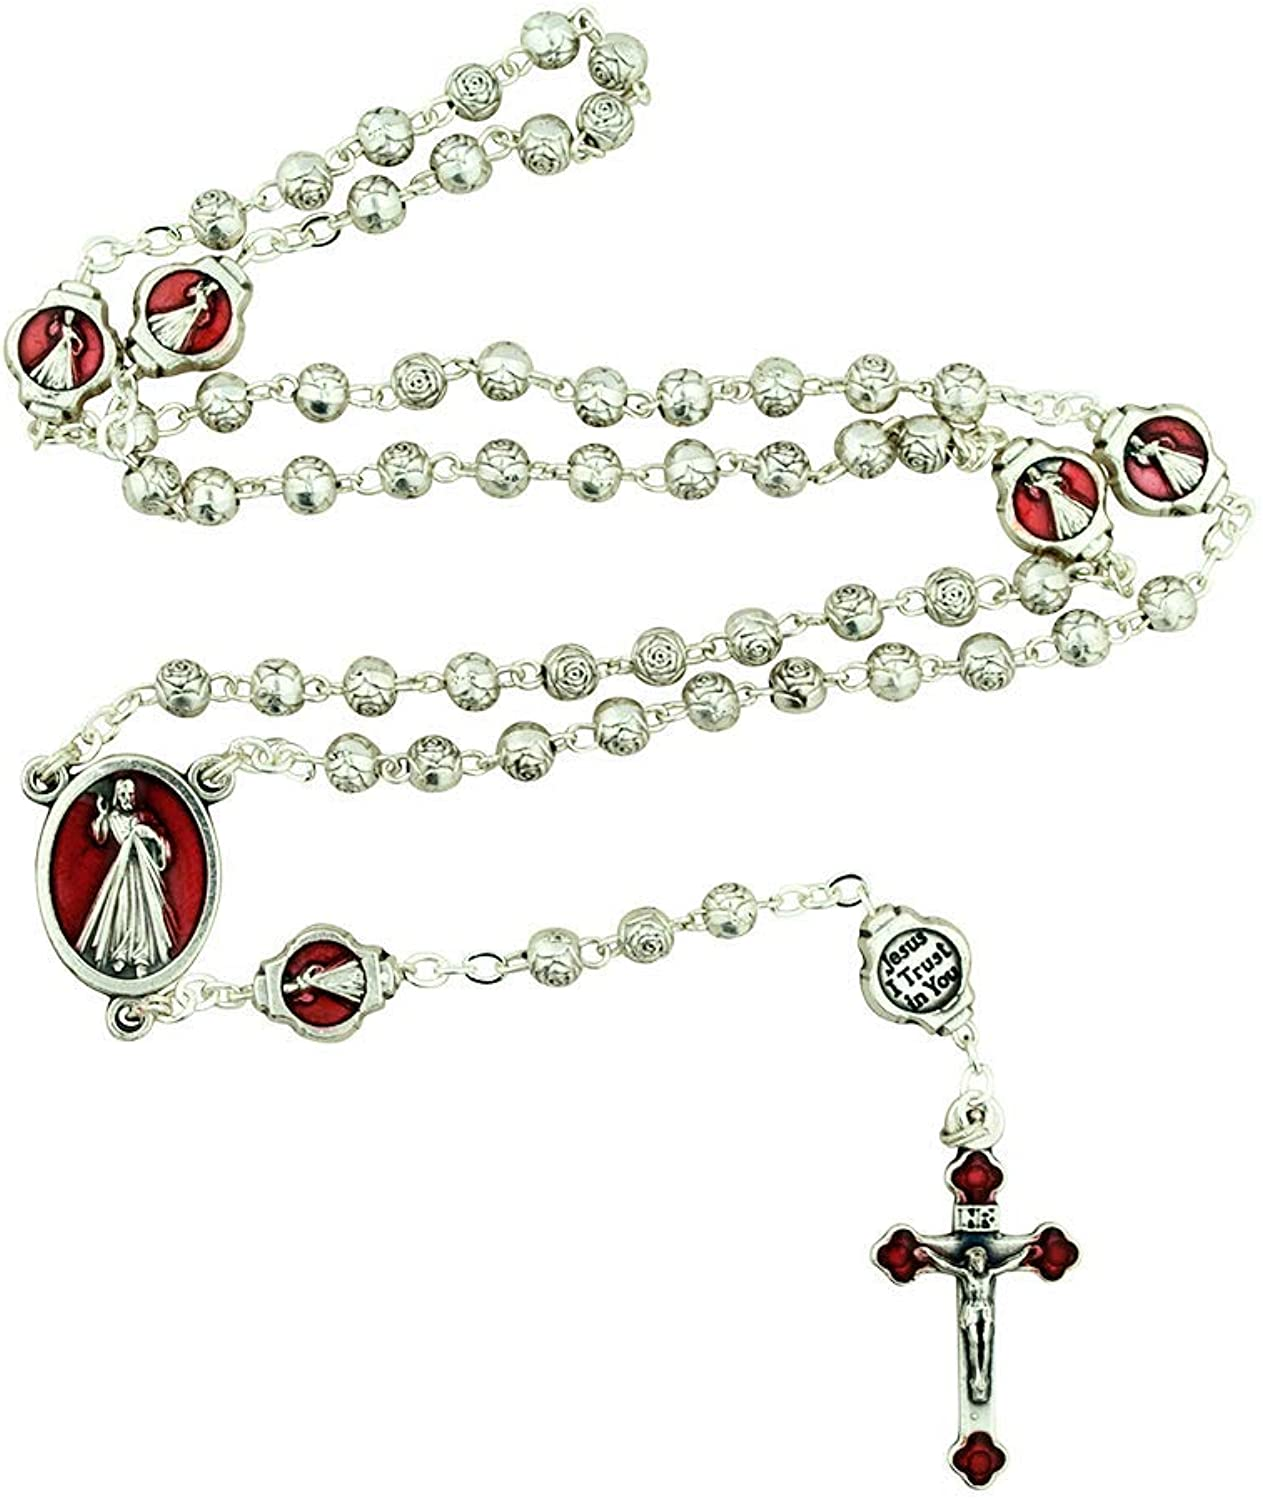 Divine Mercy pinkry with Red Enamel and Decorative Case